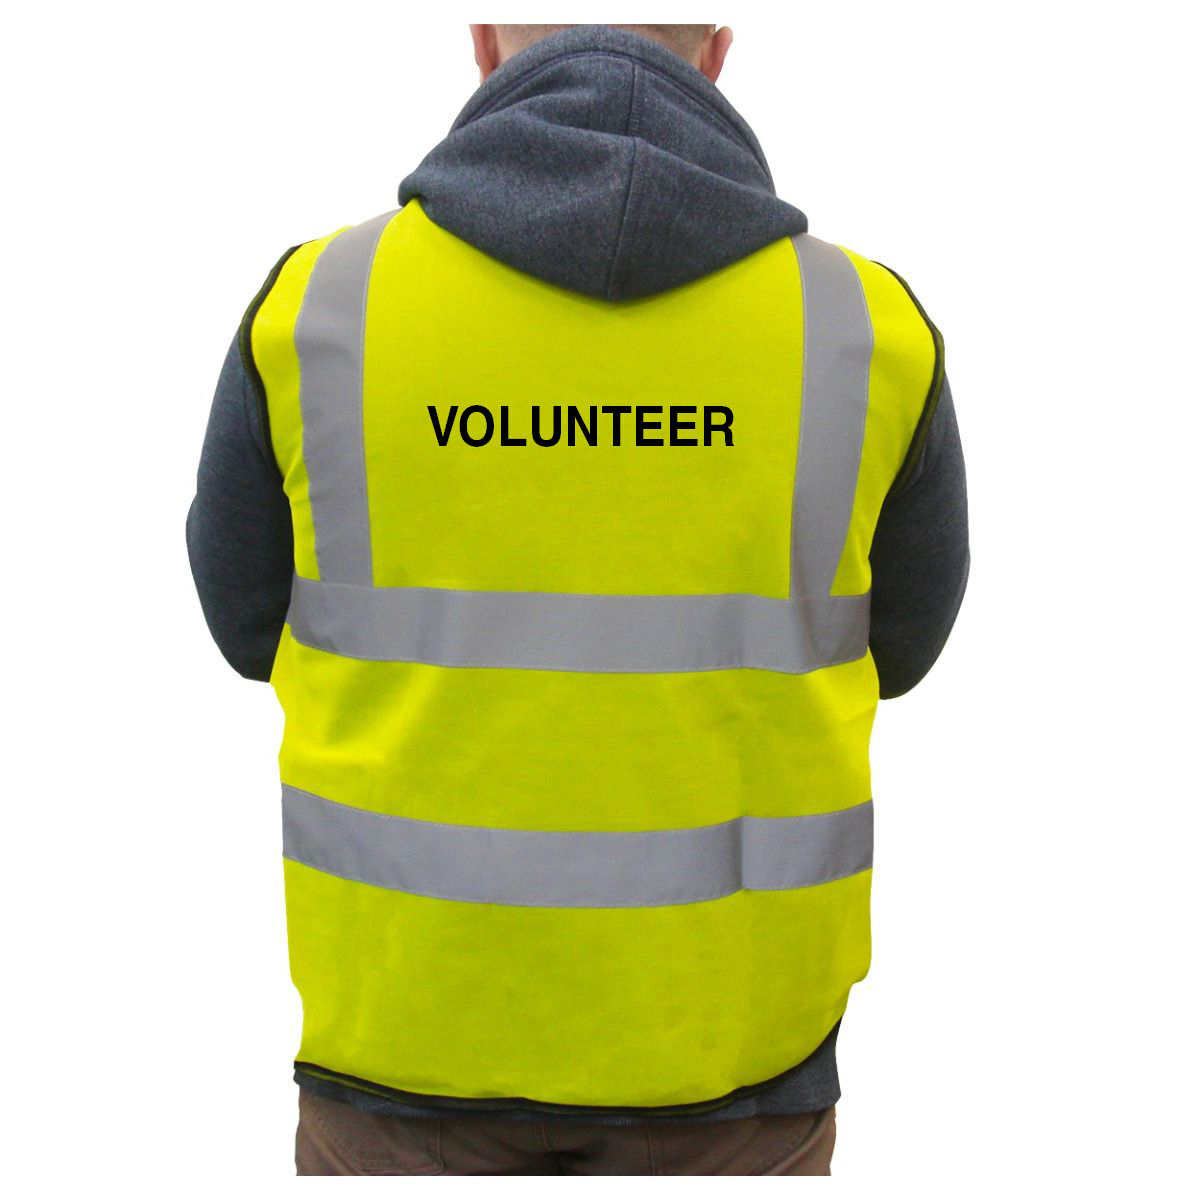 637219590777036181_hi-vis-vest-back_volunteer.jpg